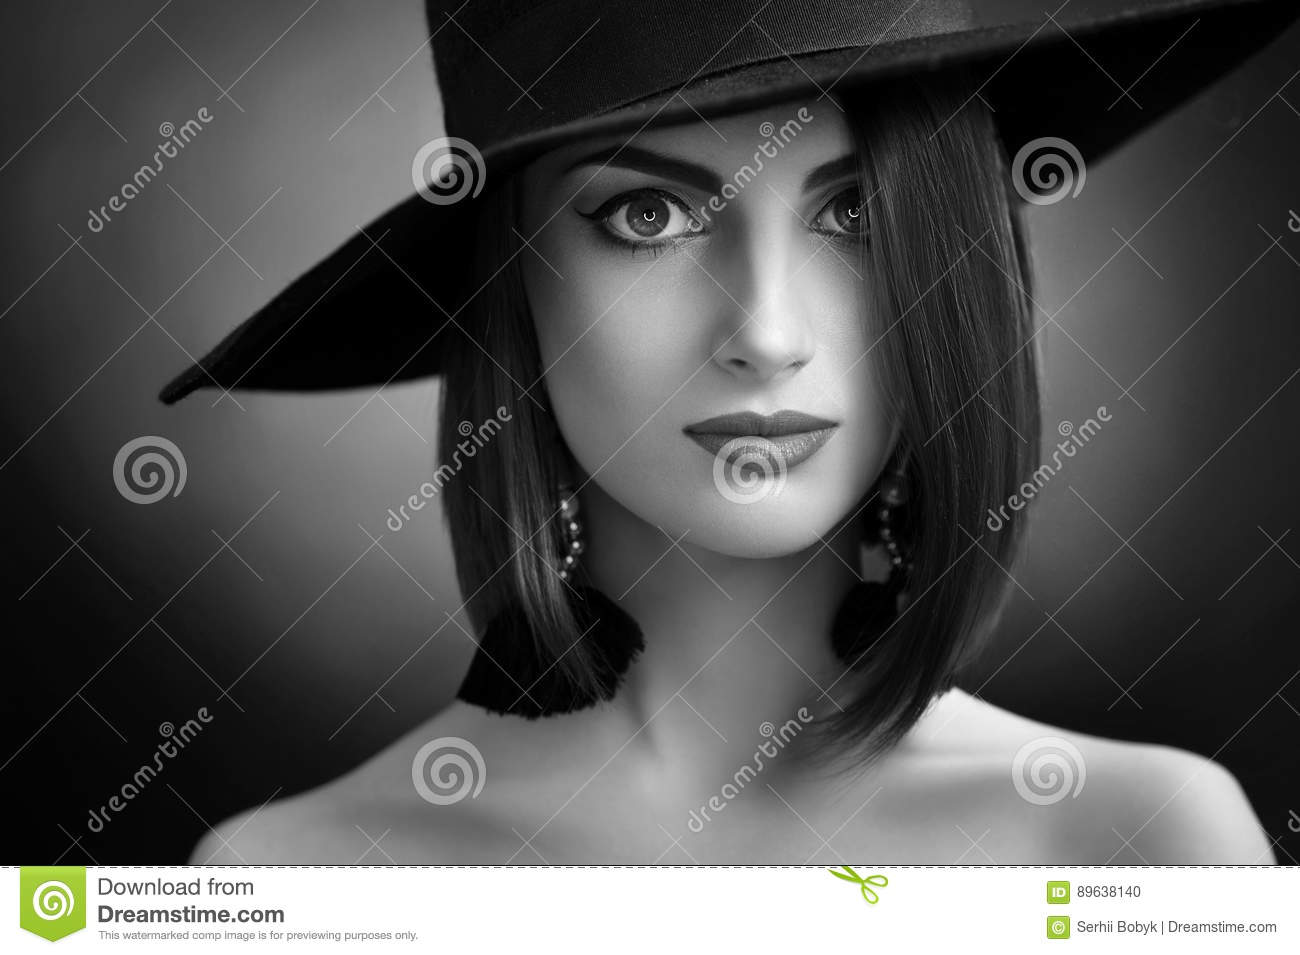 Monochrome studio close up portrait of a young elegant woman posing in a hat  on dark background cosmetics skin face lips eyes expressive confident  feminine ... e2b5b95fb54a